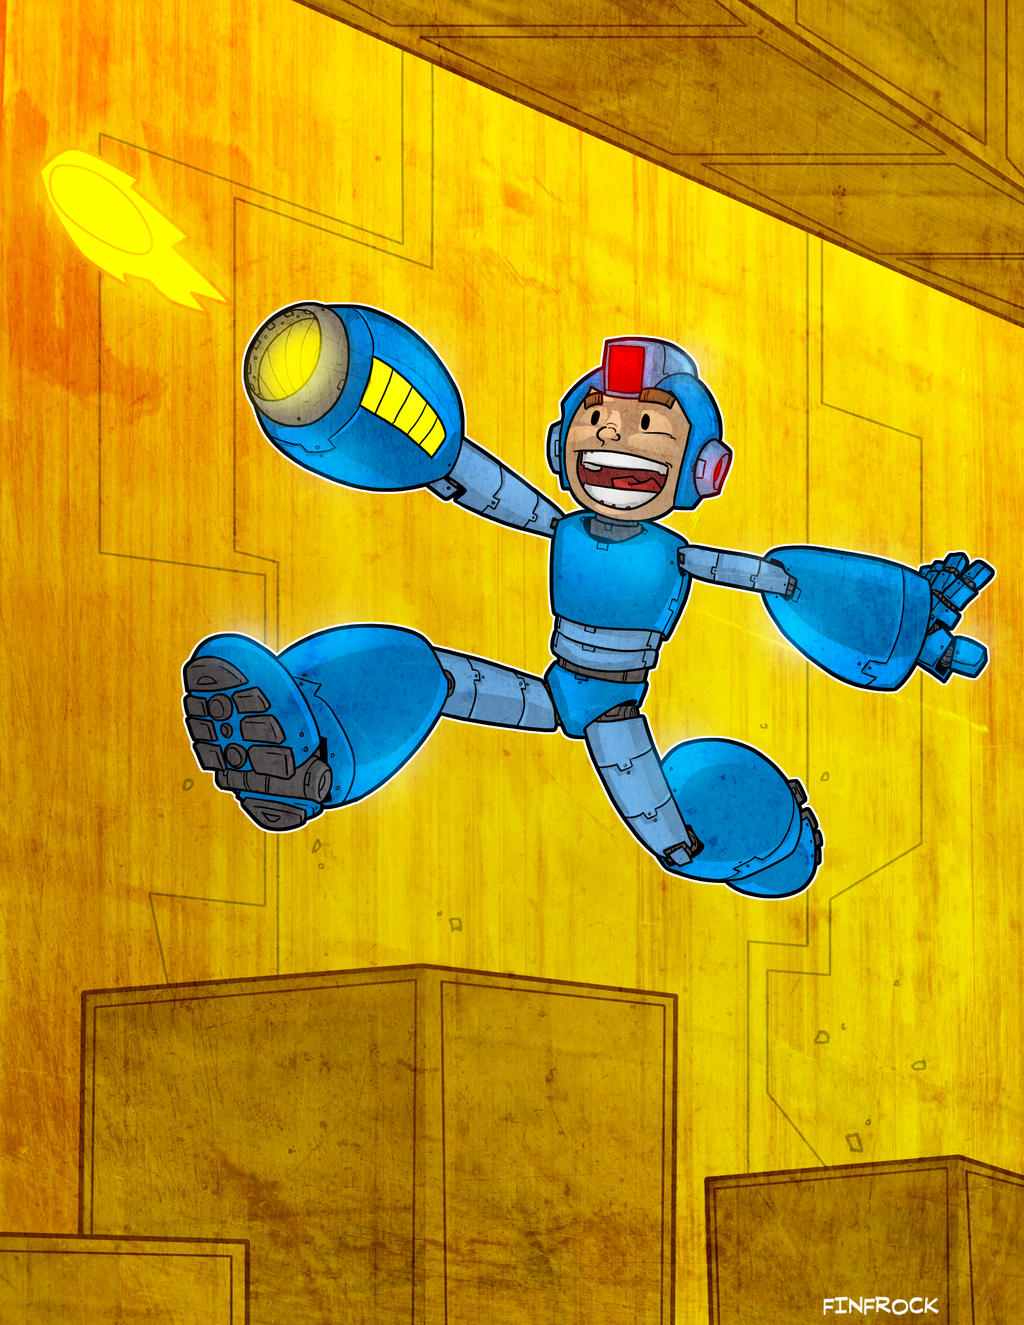 Draw-A-Thon 4 Japan: Megaman by Finfrock